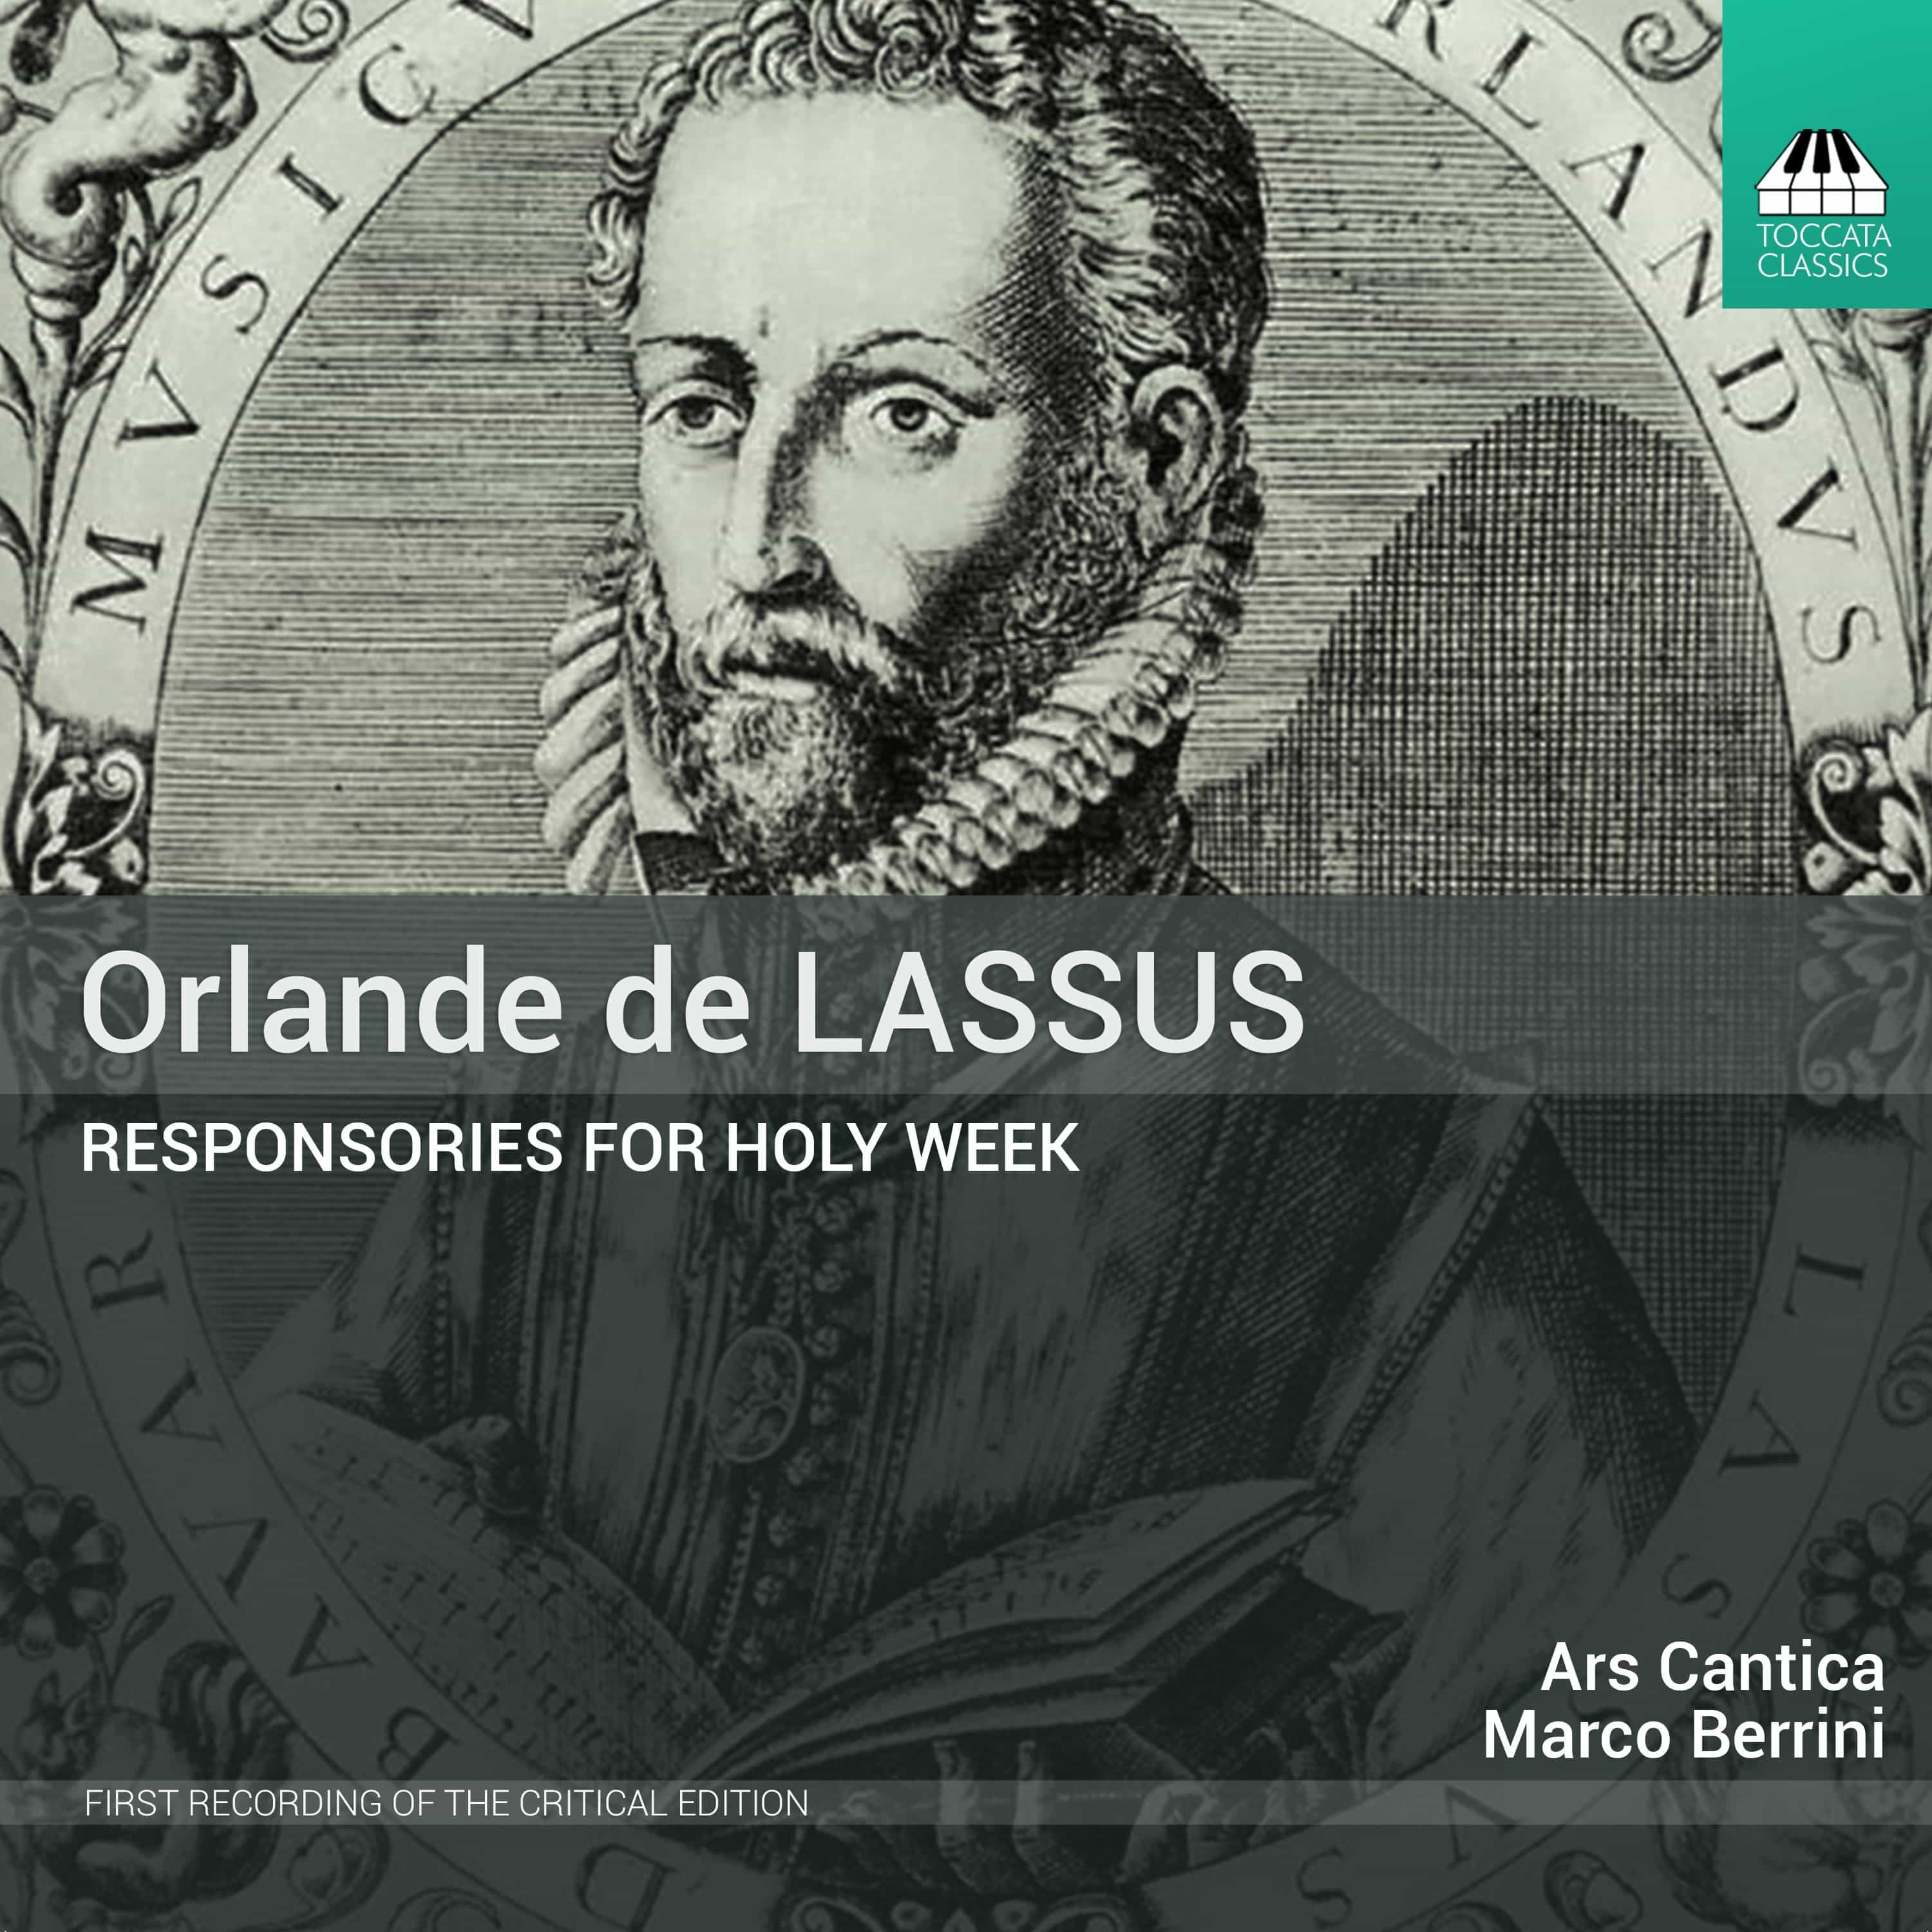 Orlande De Lassus: Responsories for Holy Week